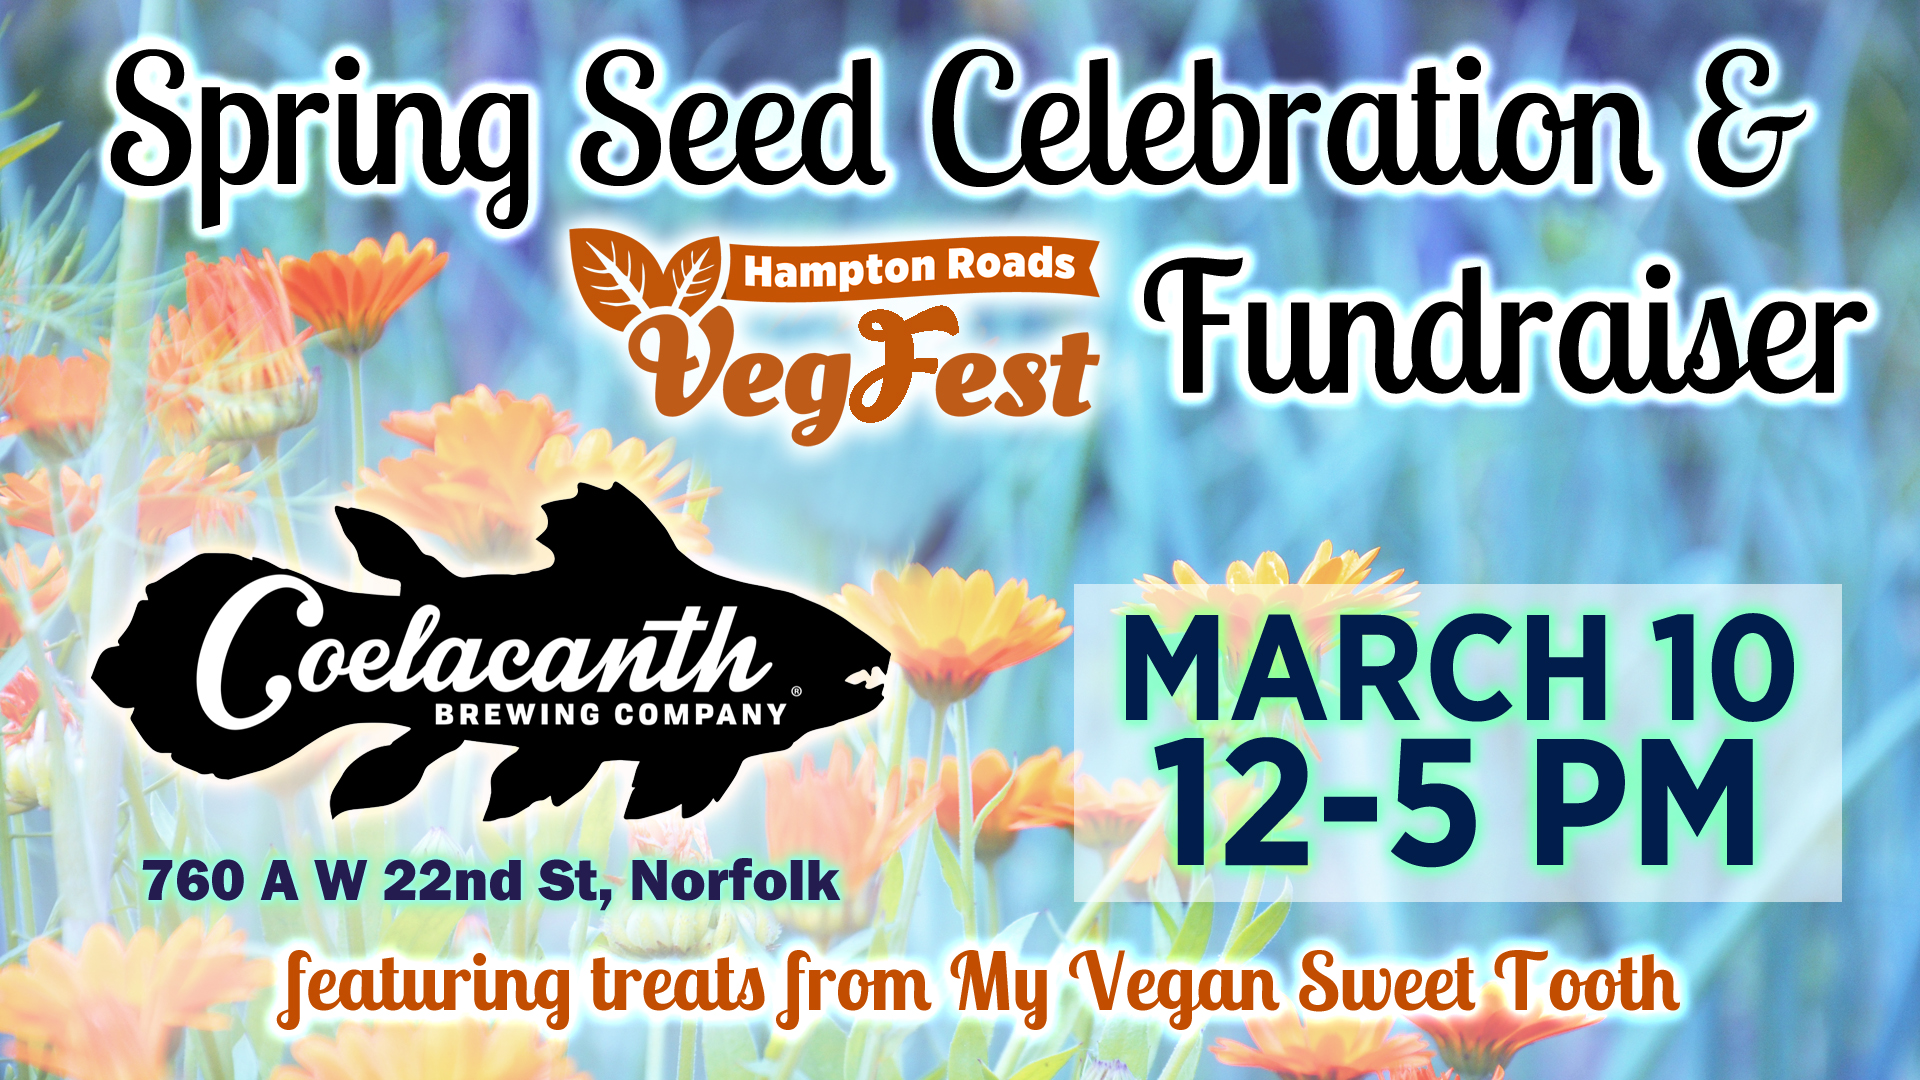 Spring Seed Celebration and Fundraiser!